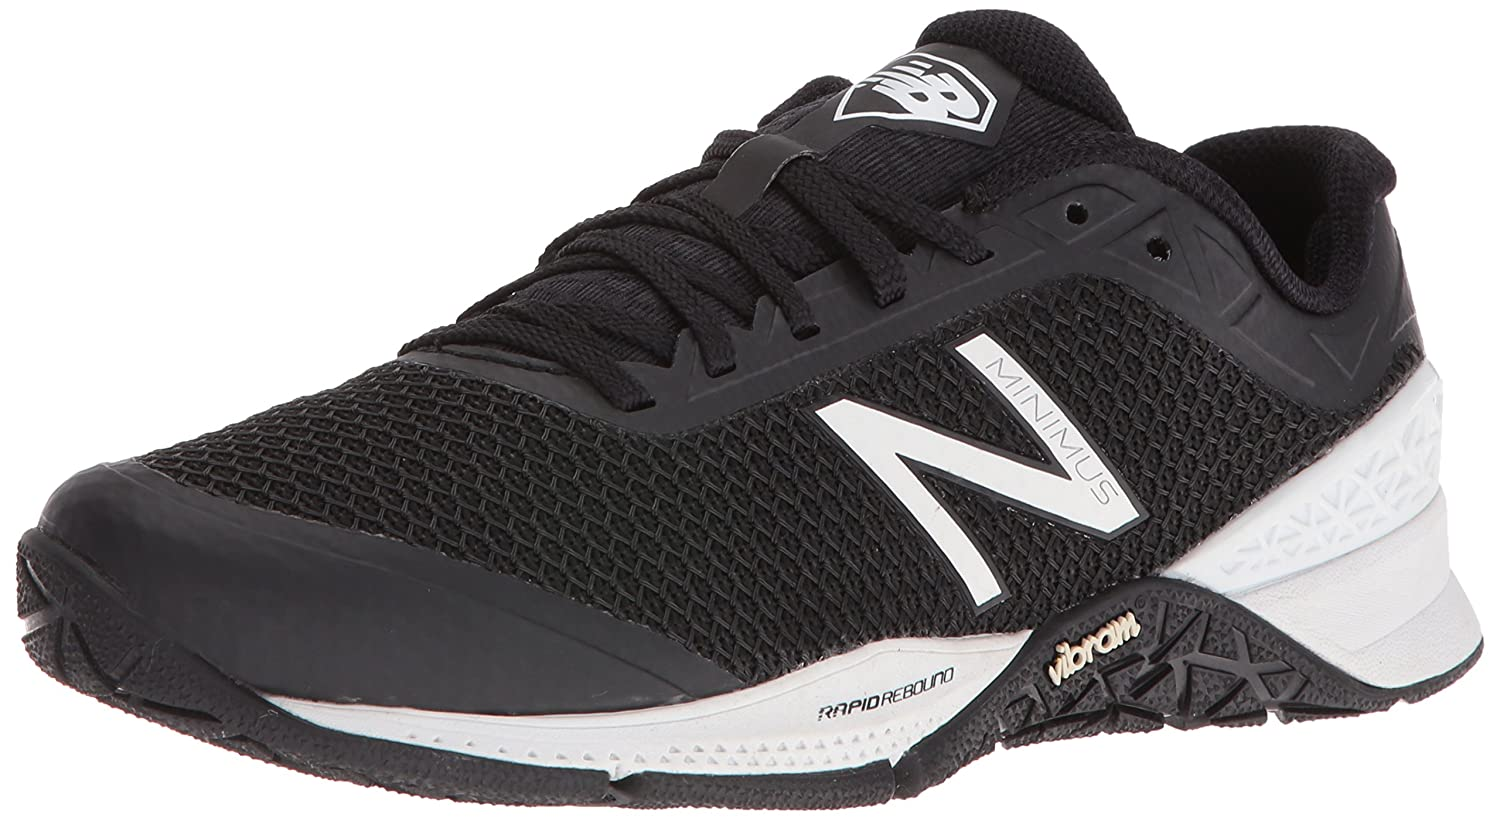 New Balance Women's WX40V1 Cross Trainers B01CQVUJQA 11 D US|Black/White